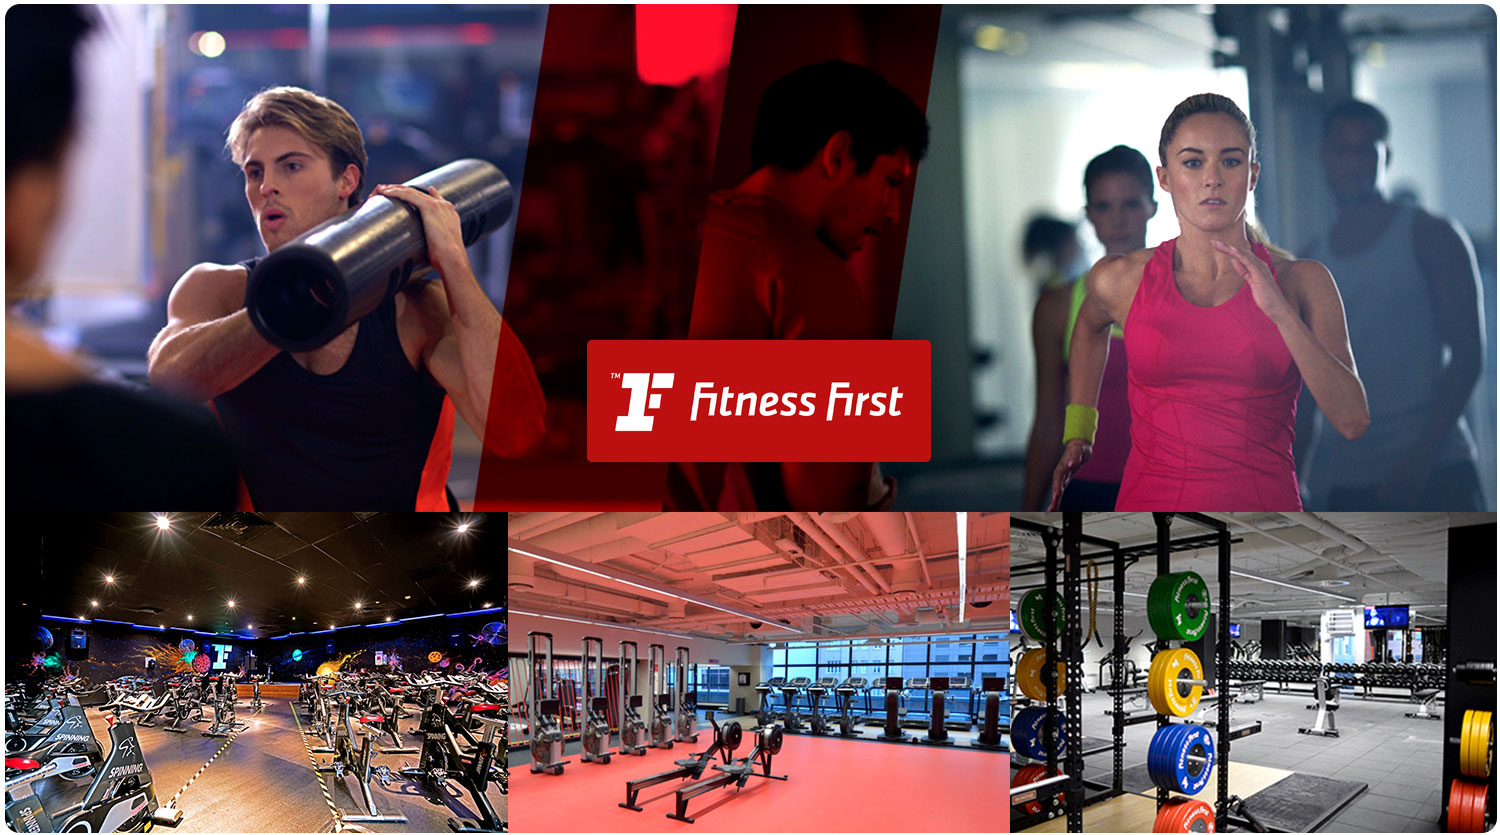 Start your Fitness Journey with Fitness First with only $14.95 for 14 days at Fitness First Dee Why NSW. Experience our first class gym and freestyle classes inc. Pilates, Yoga, HIIT, Les Mills and more. Take the first step with Fitness First Dee Why NSW.